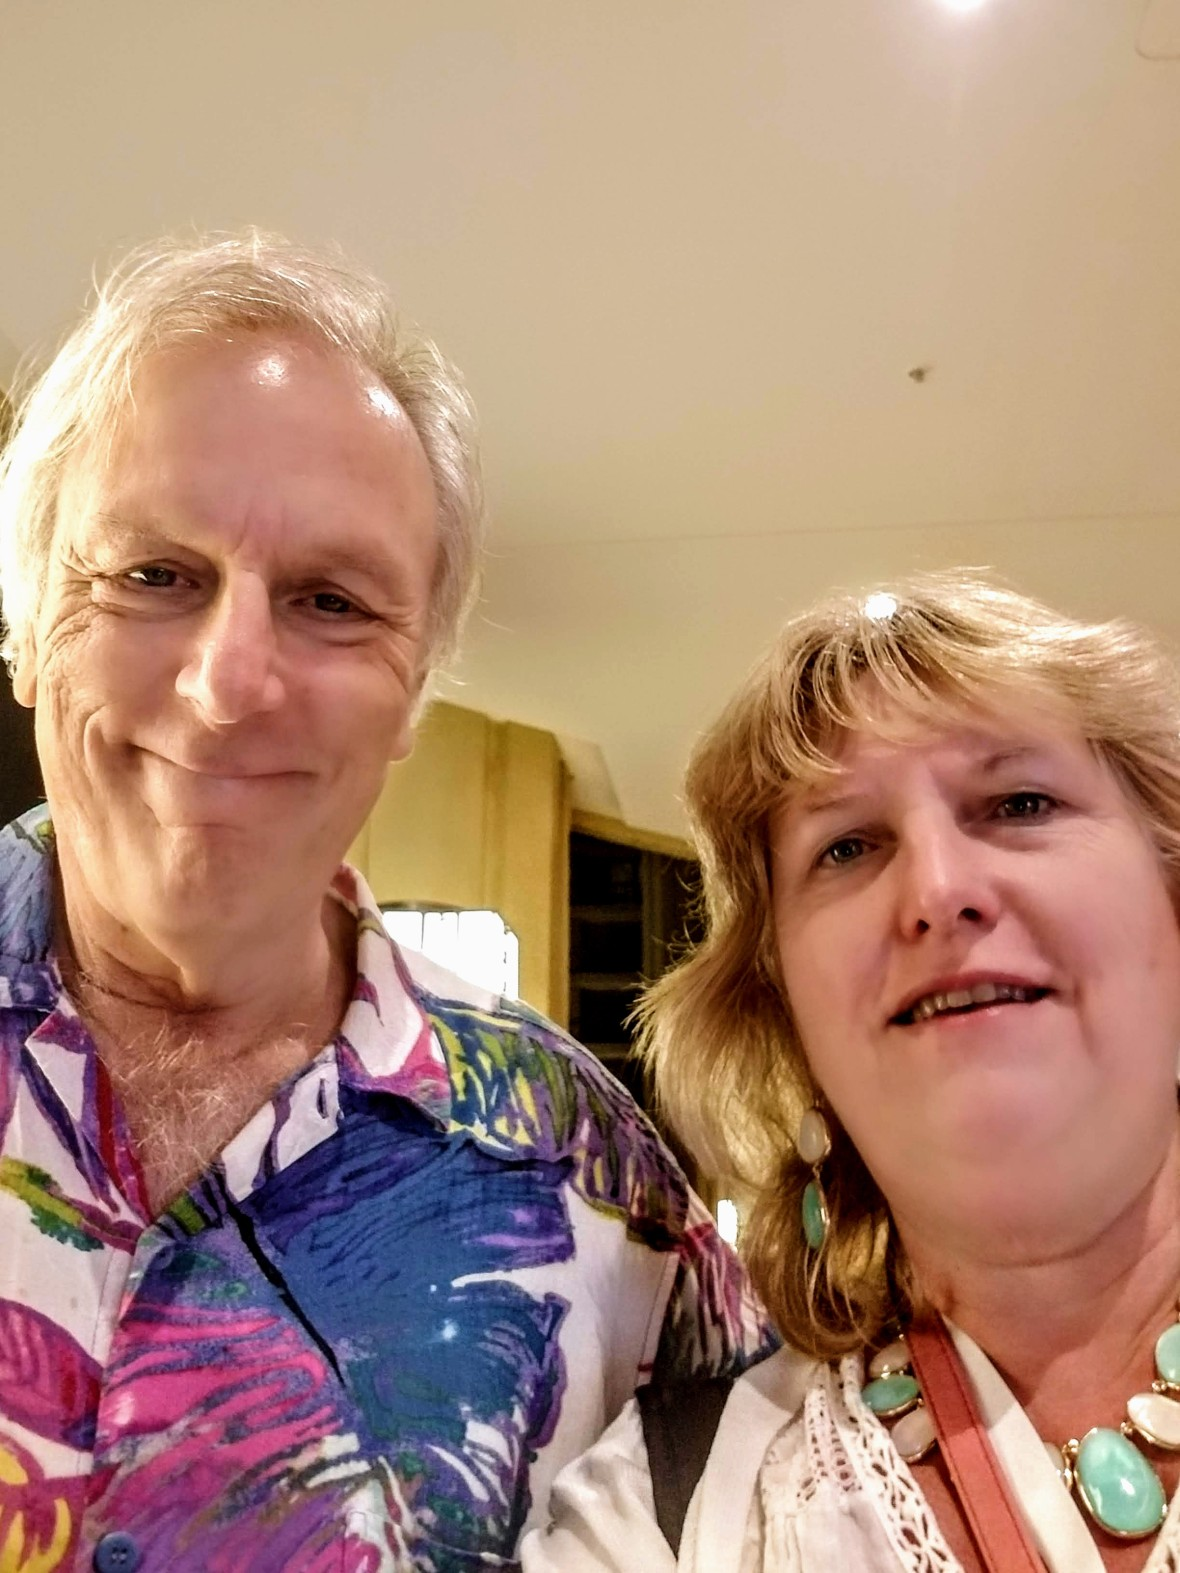 Alan Cohen and Maggie Holbik At the Soulapalooza conference in Honolulu, Hawaii, November, 2018